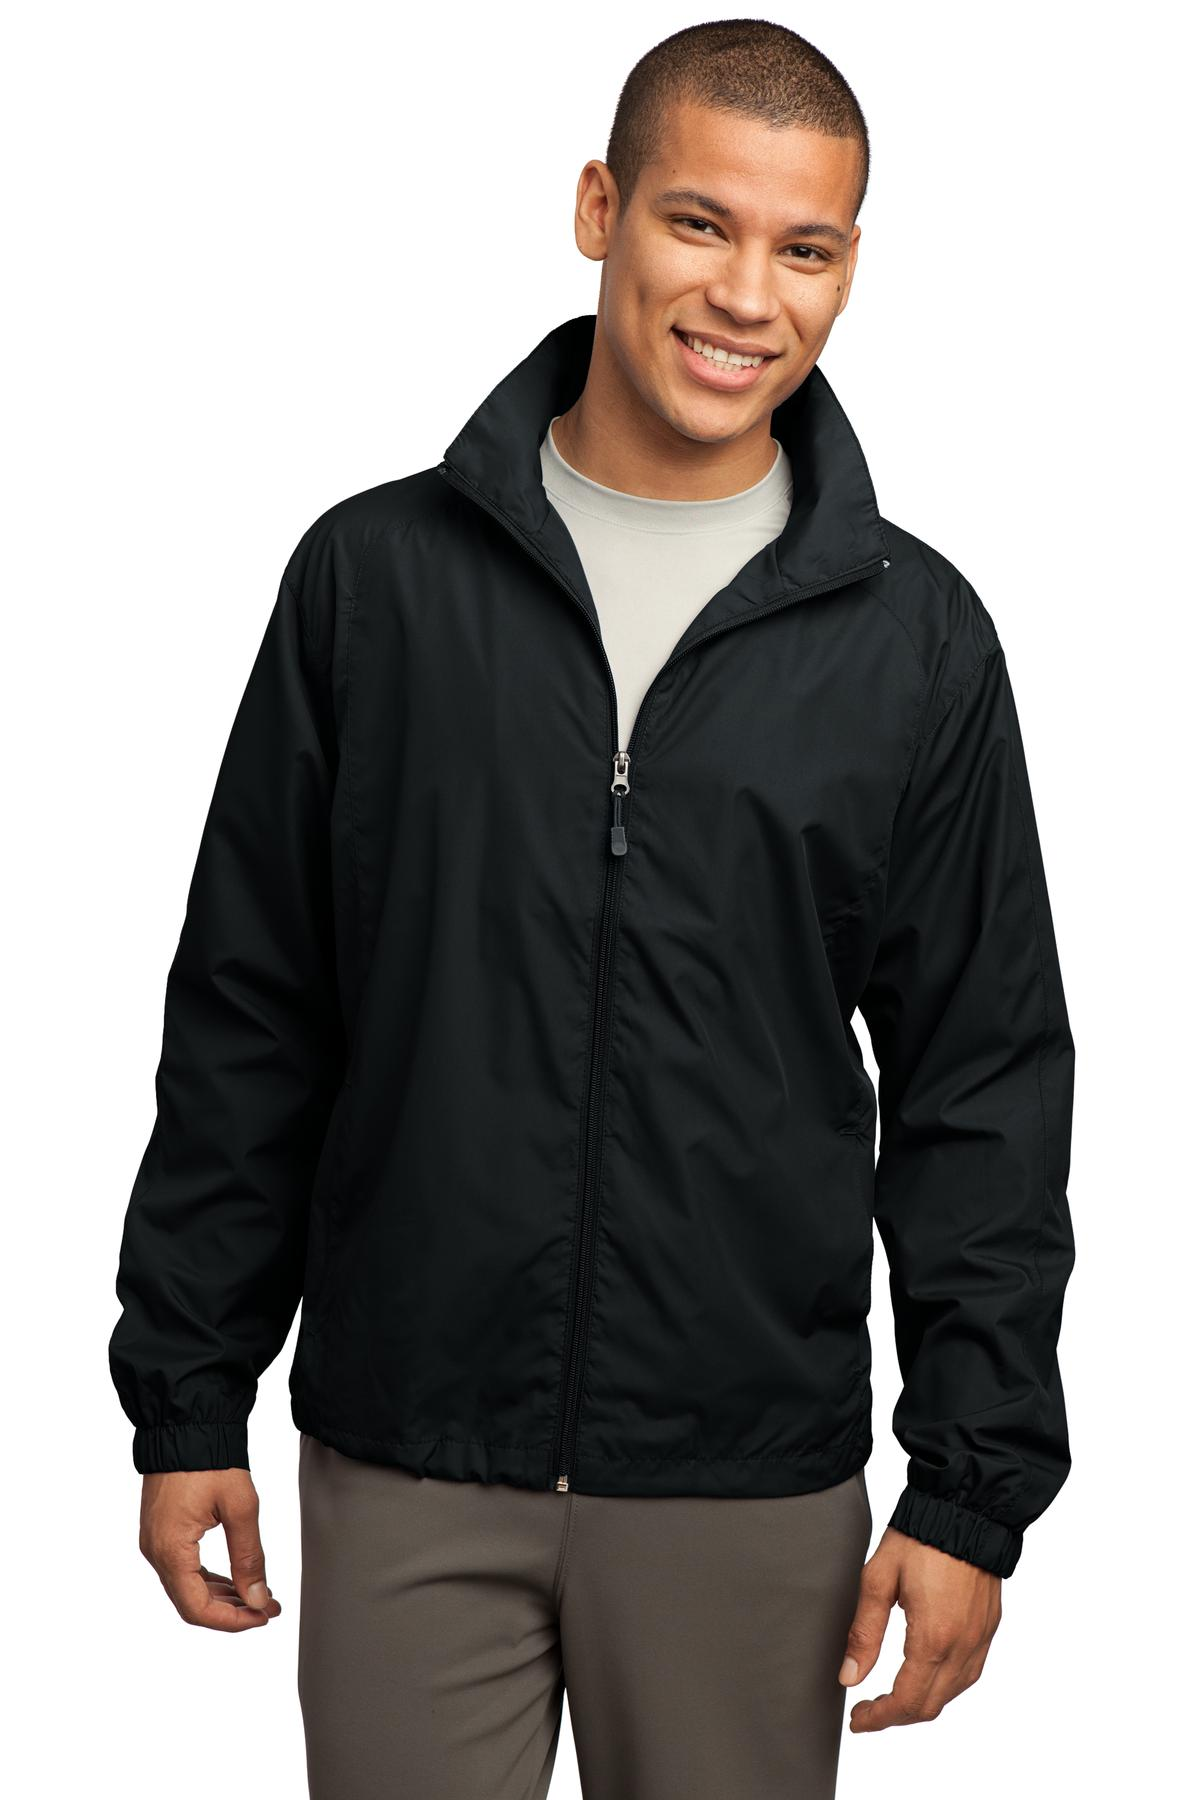 Full-Zip Wind Jacket-Sport-Tek